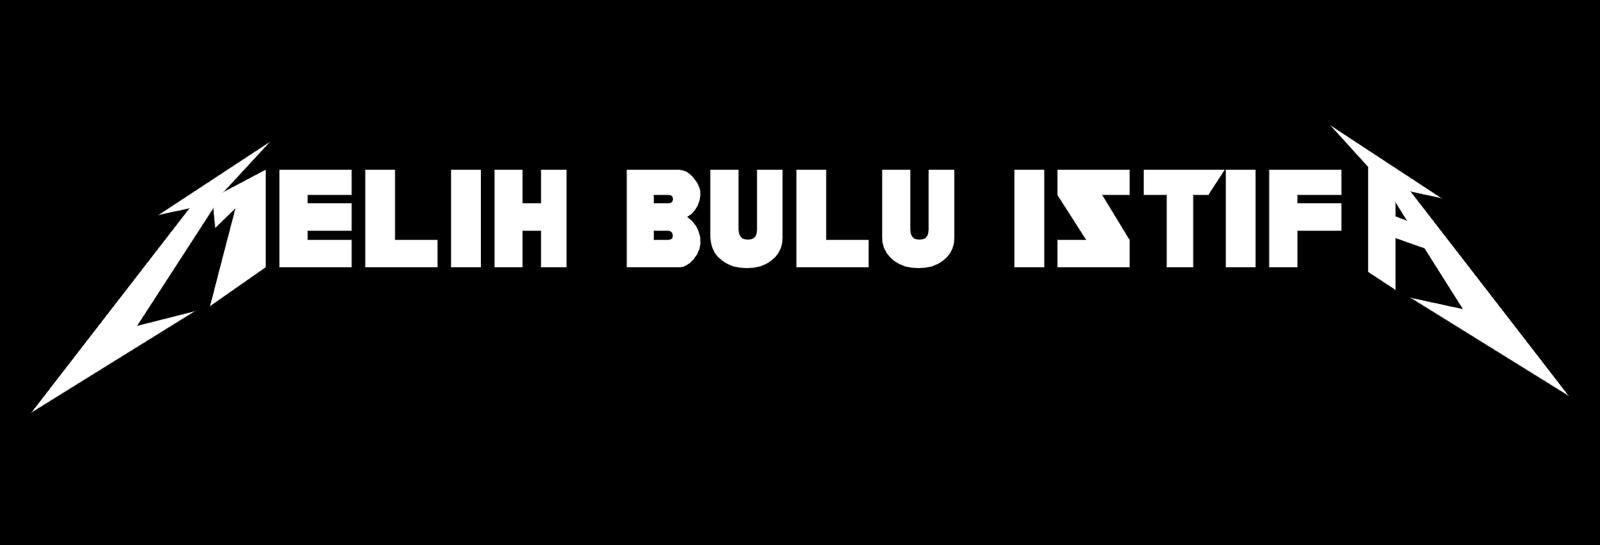 "This picture says ""Melih Bulut, Resign""."